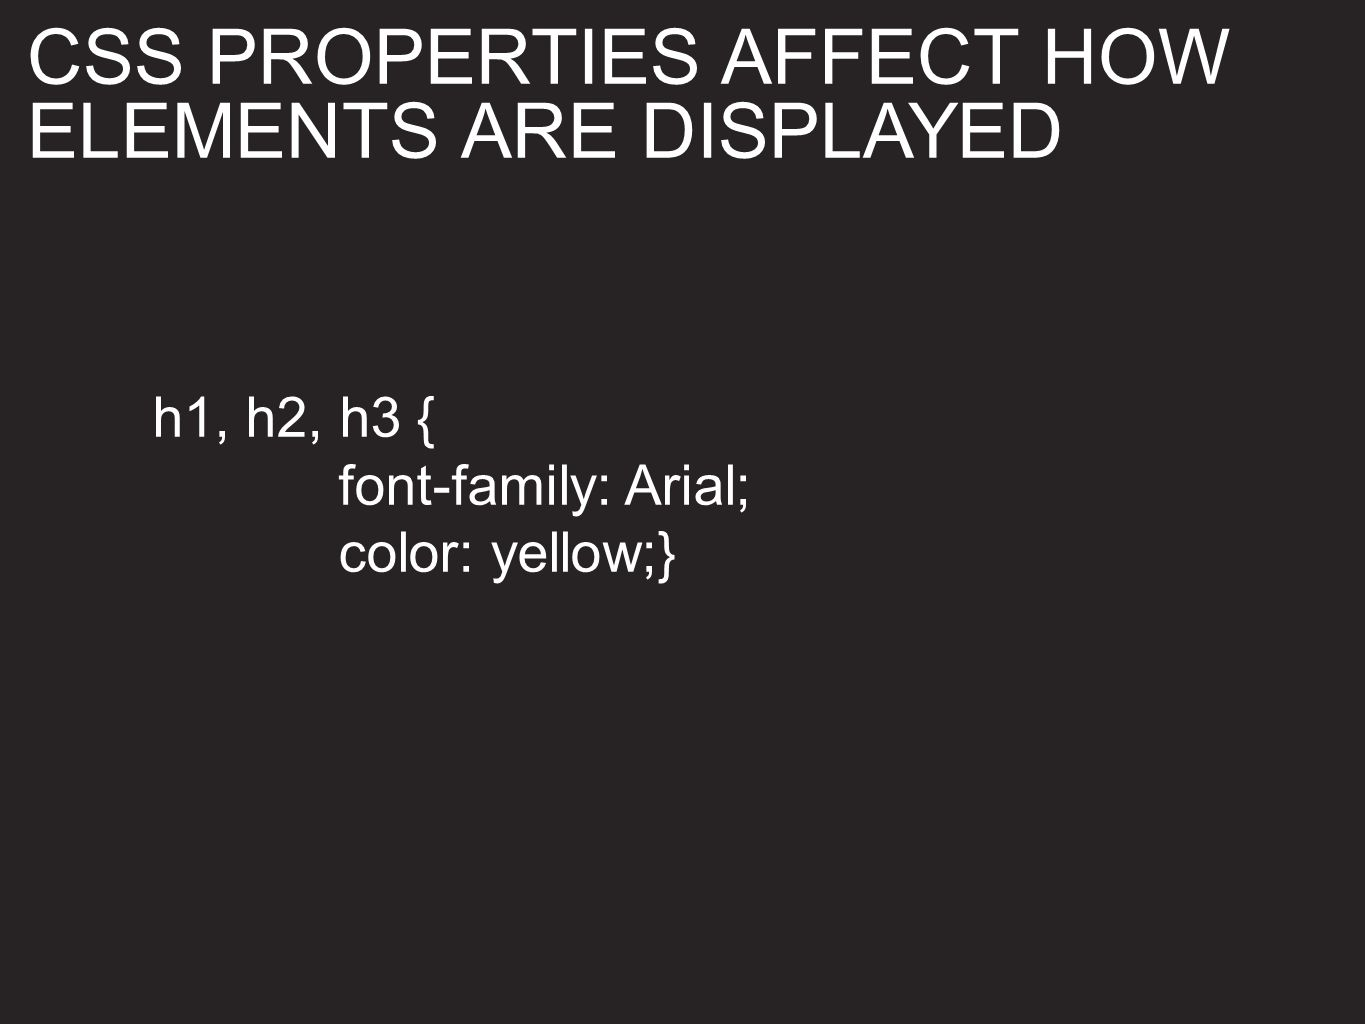 h1, h2, h3 { font-family: Arial; color: yellow;} CSS PROPERTIES AFFECT HOW ELEMENTS ARE DISPLAYED